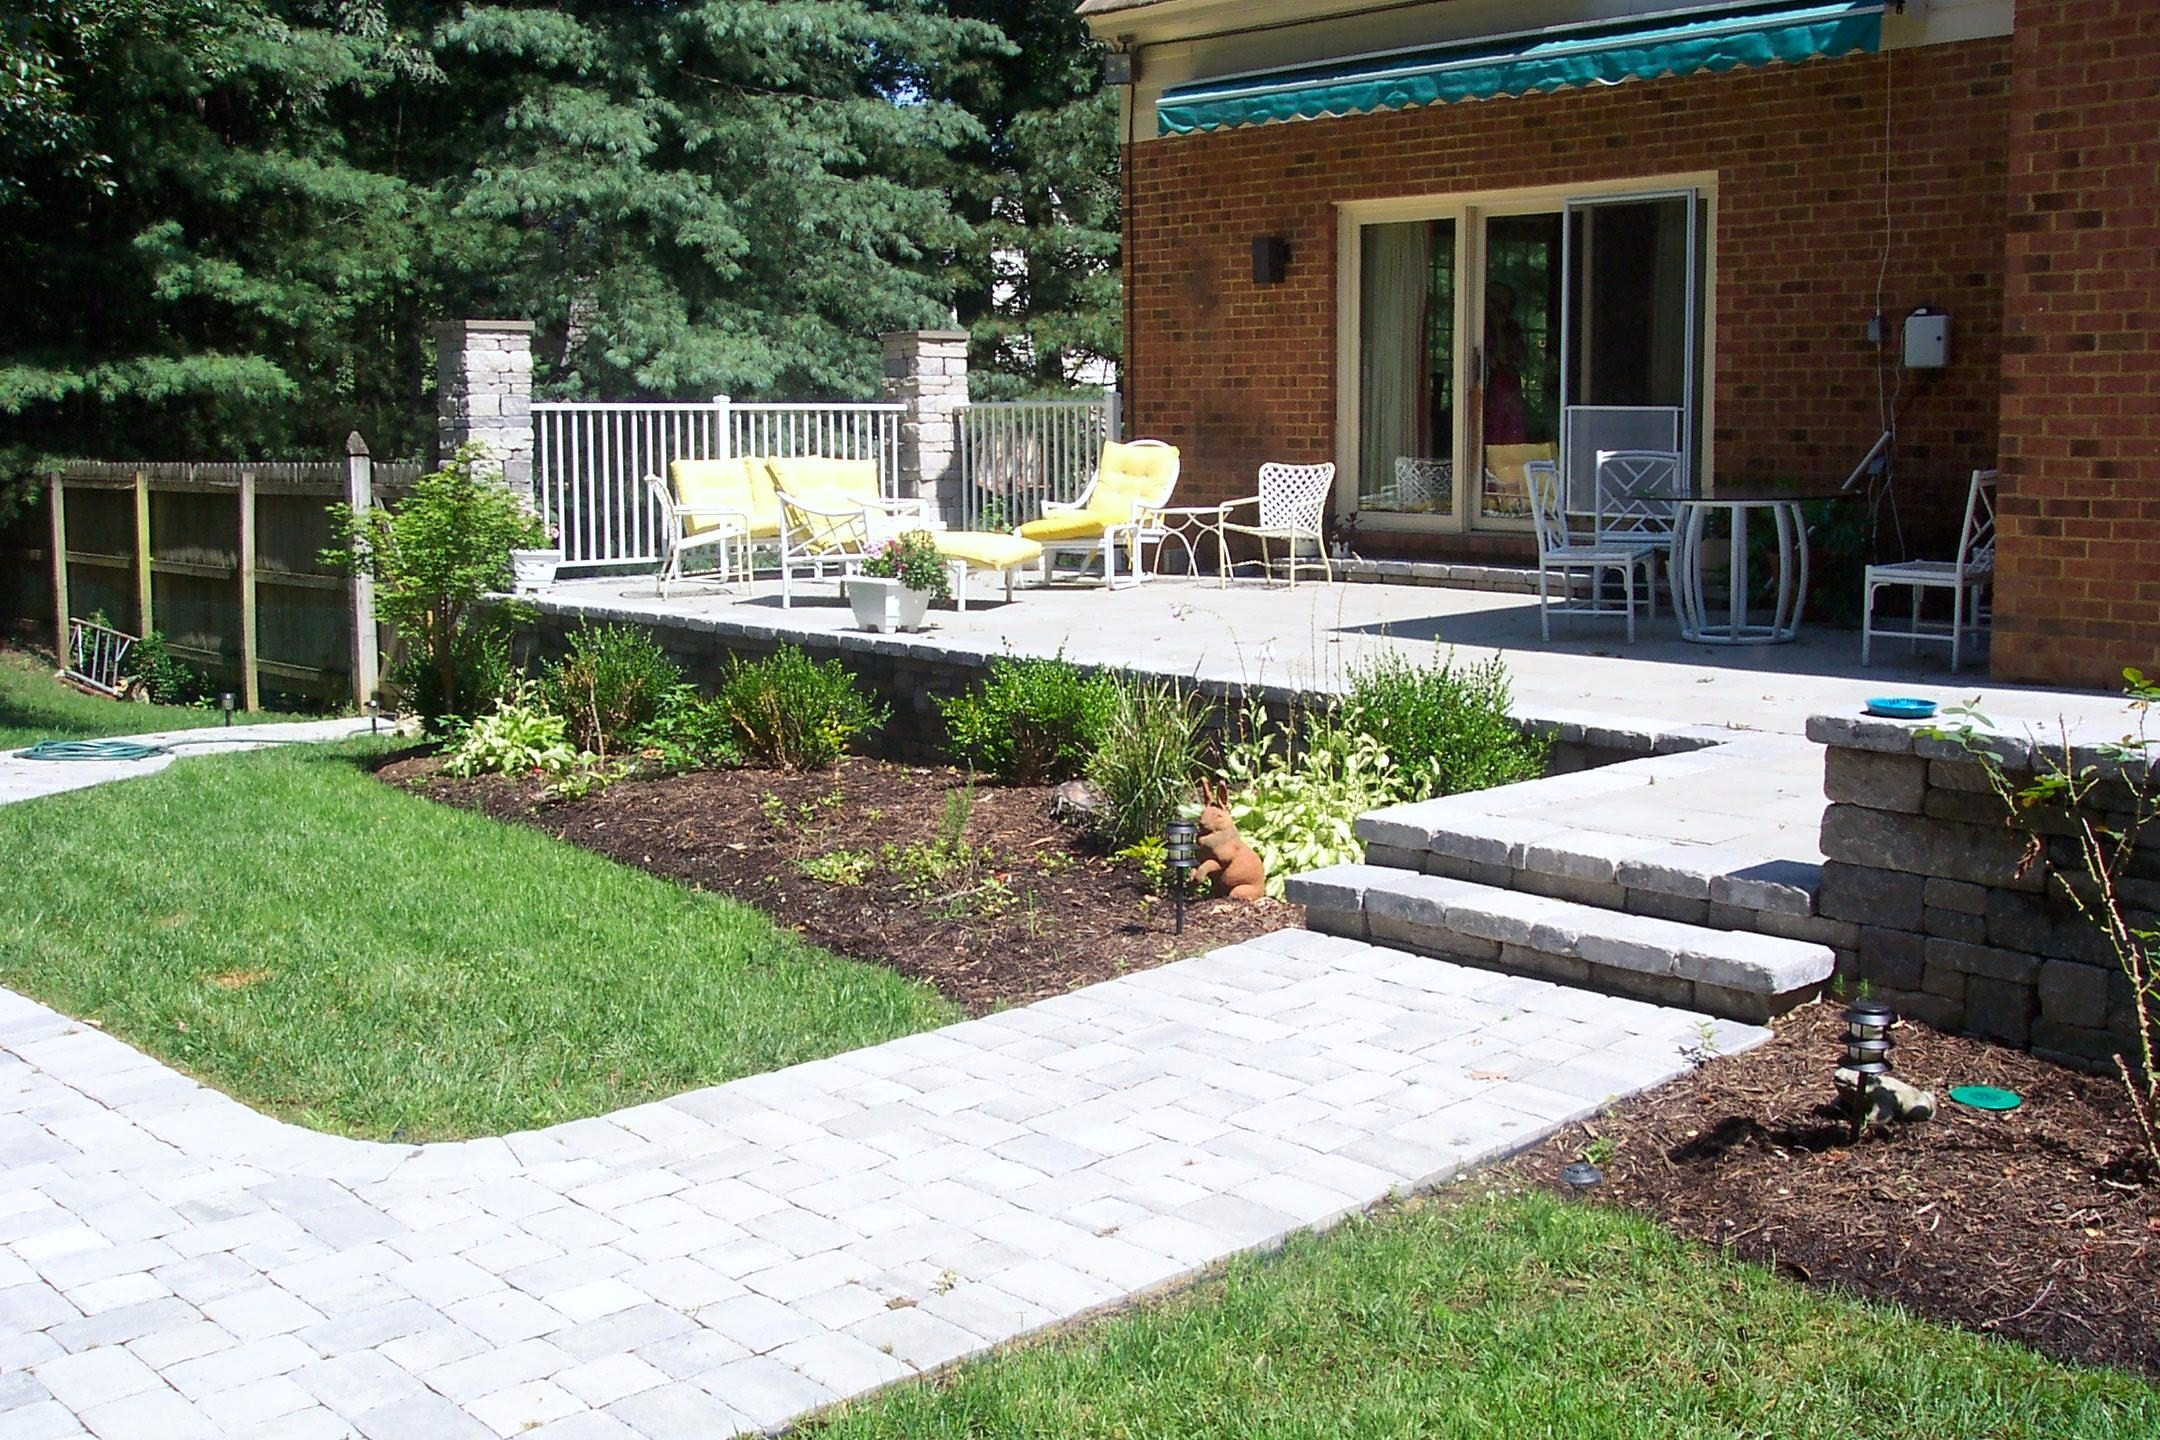 This Is A Raised Patio That Transitions Down To A Walkway With Nice  Landscaping.  Patio Vs Deck